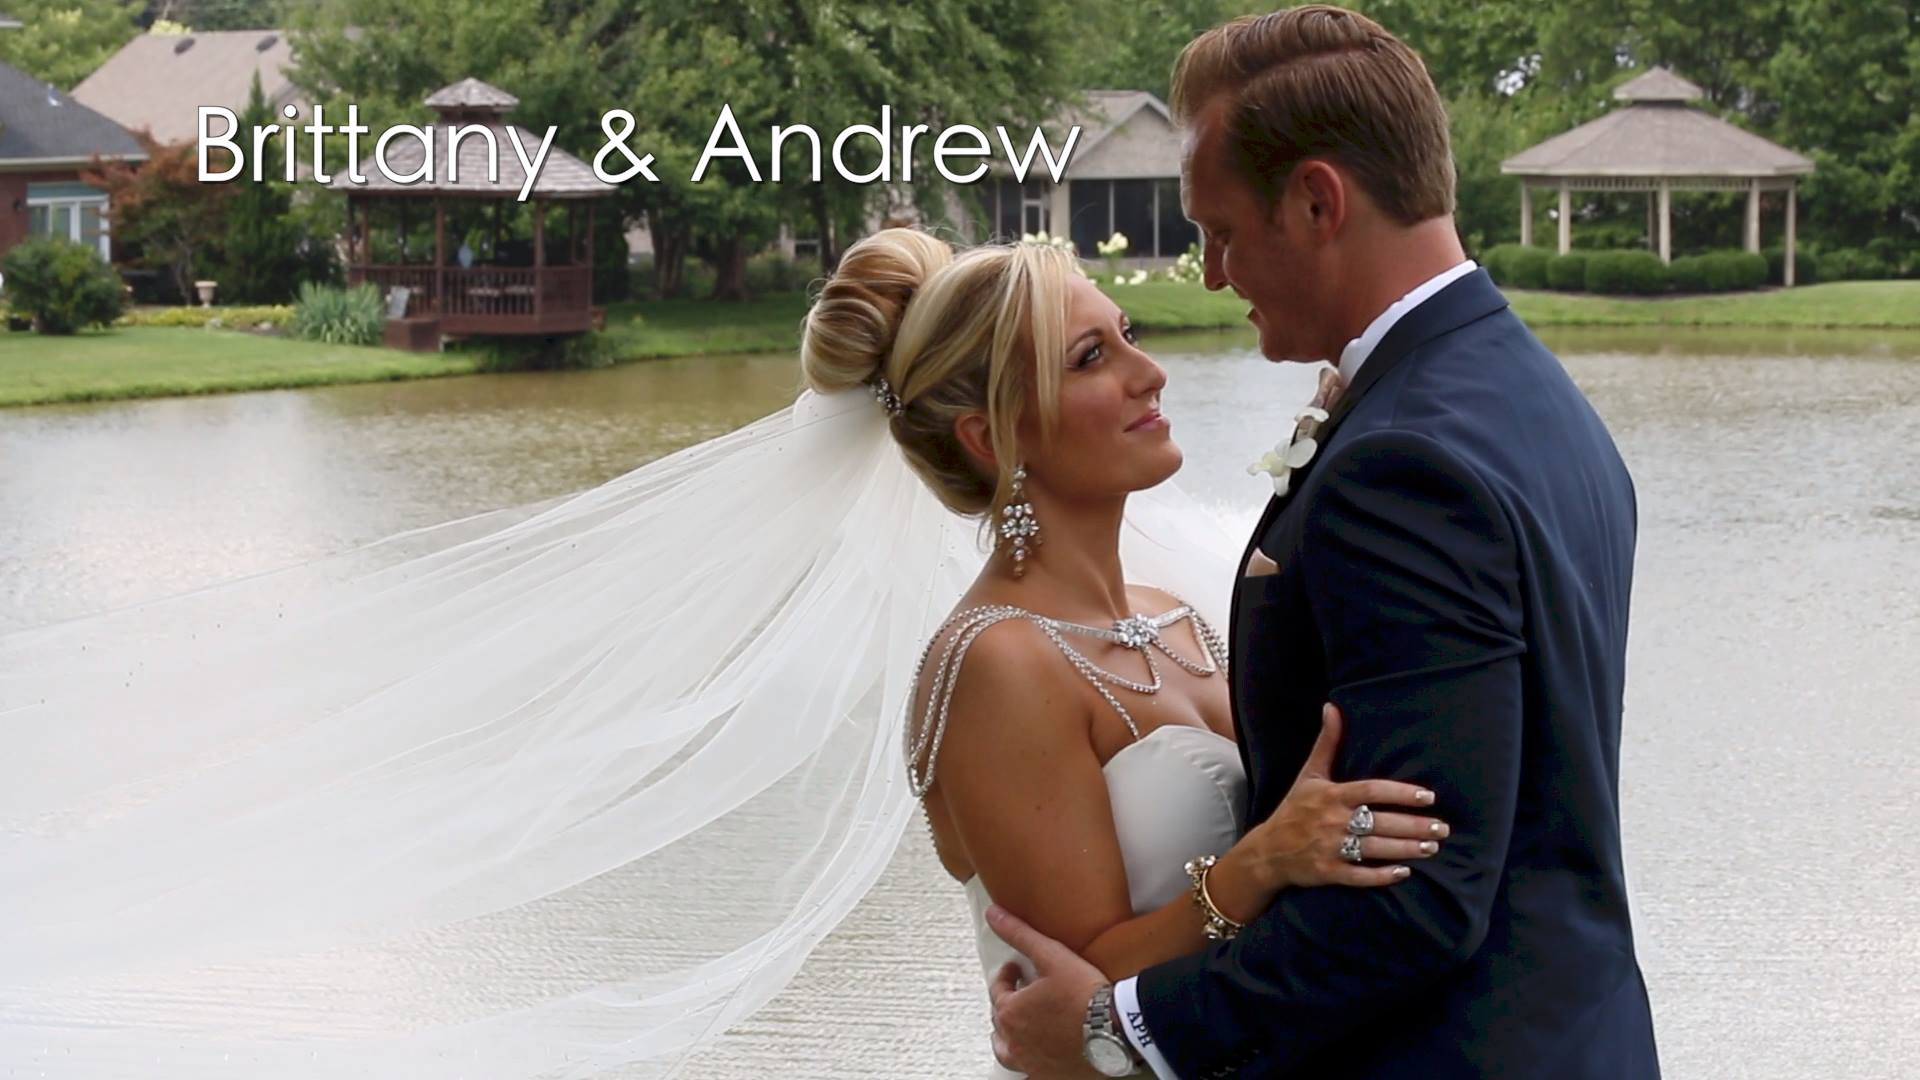 Brittany & Andrew